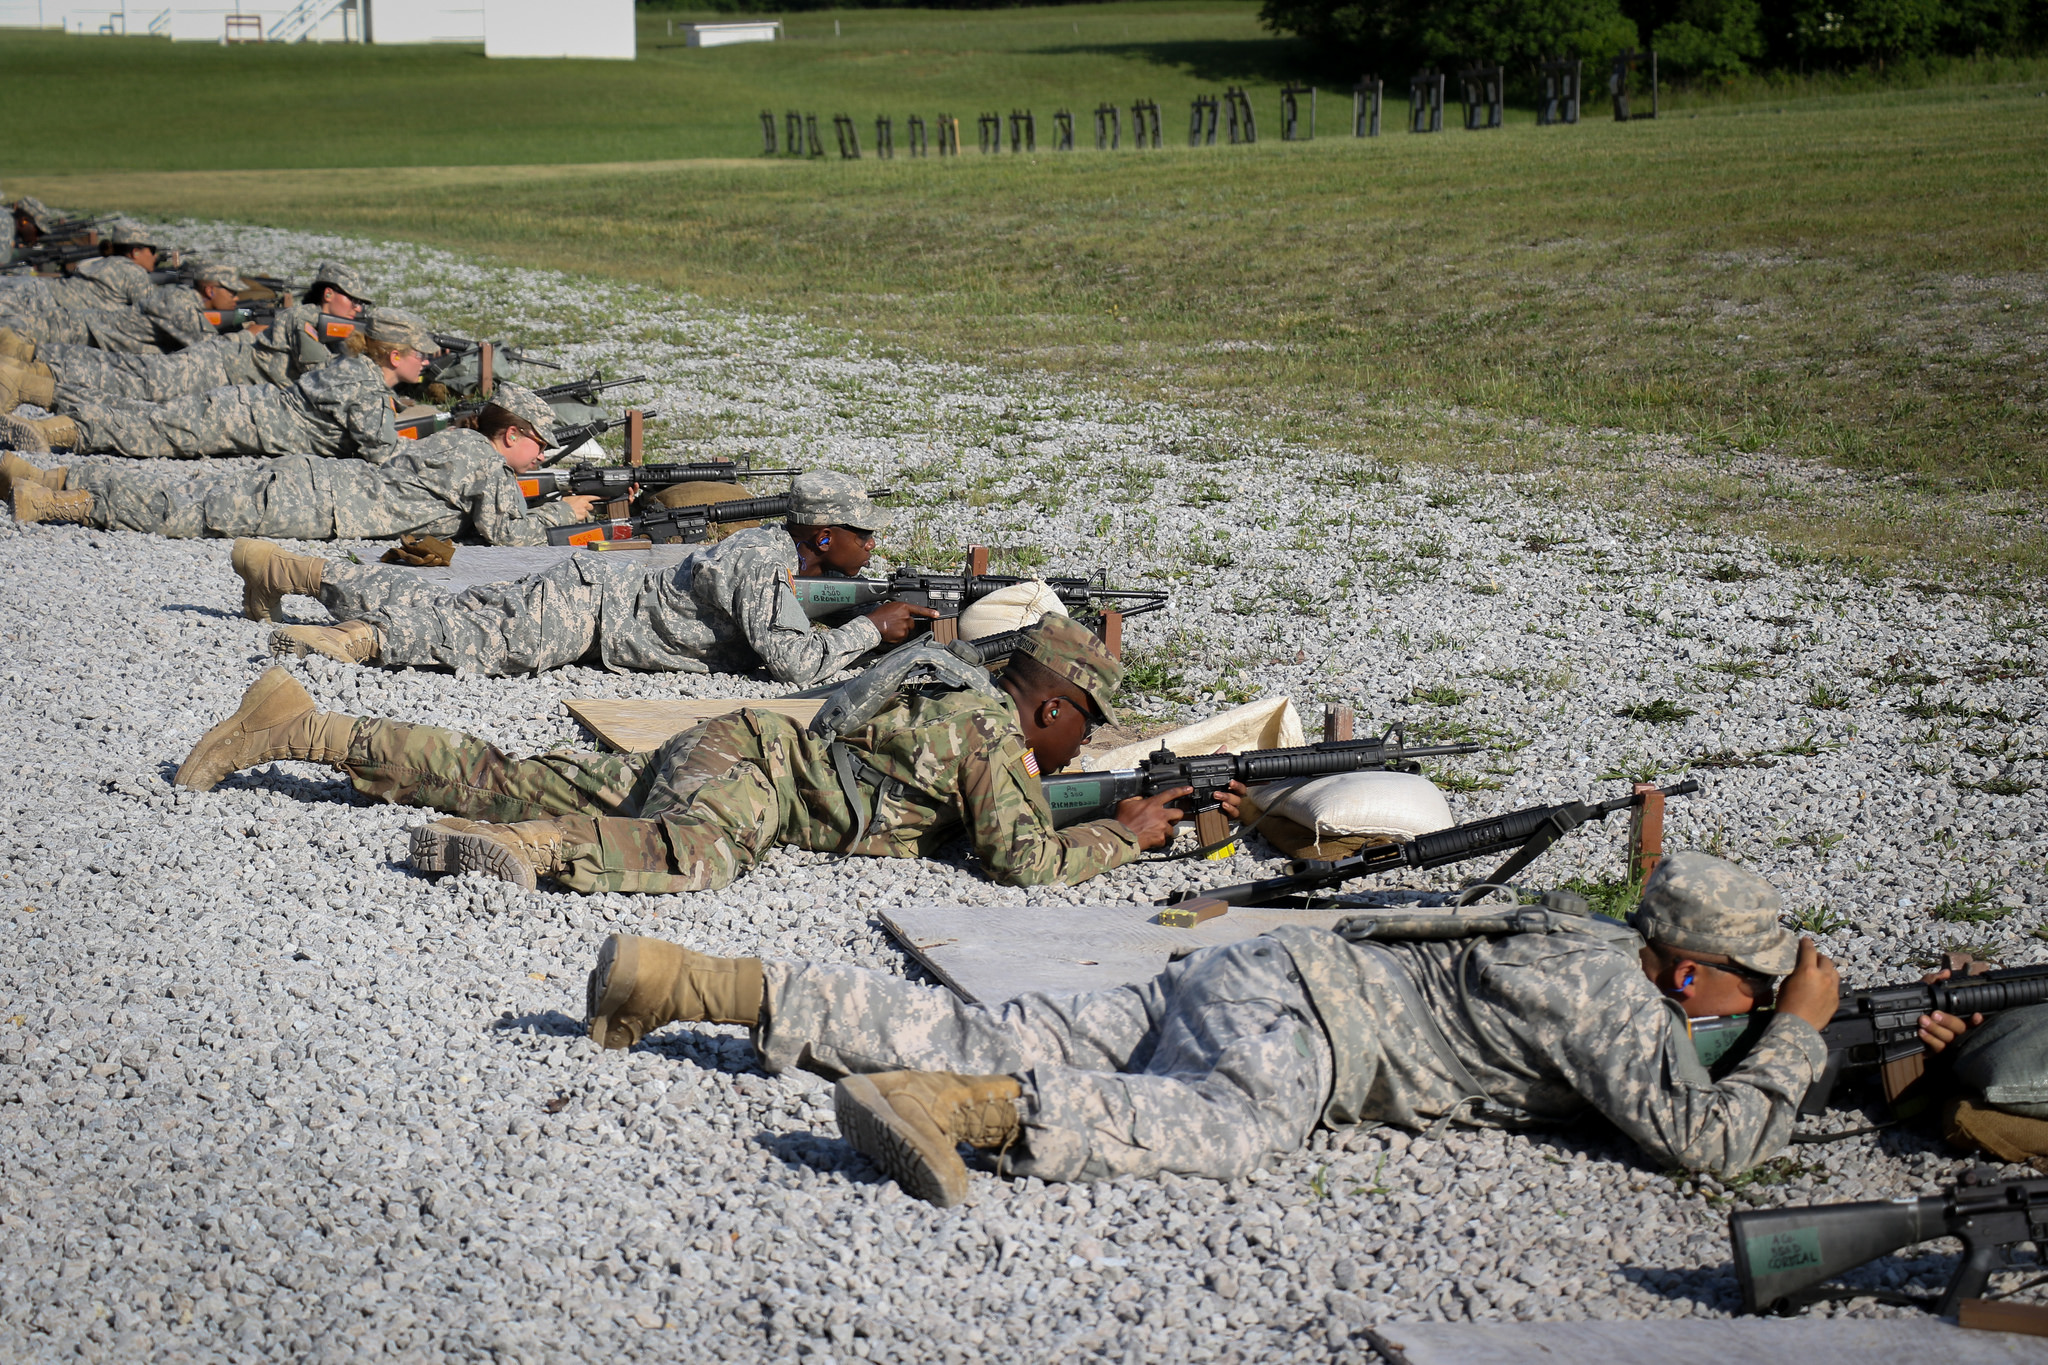 Covering the basics of weapons qualifications